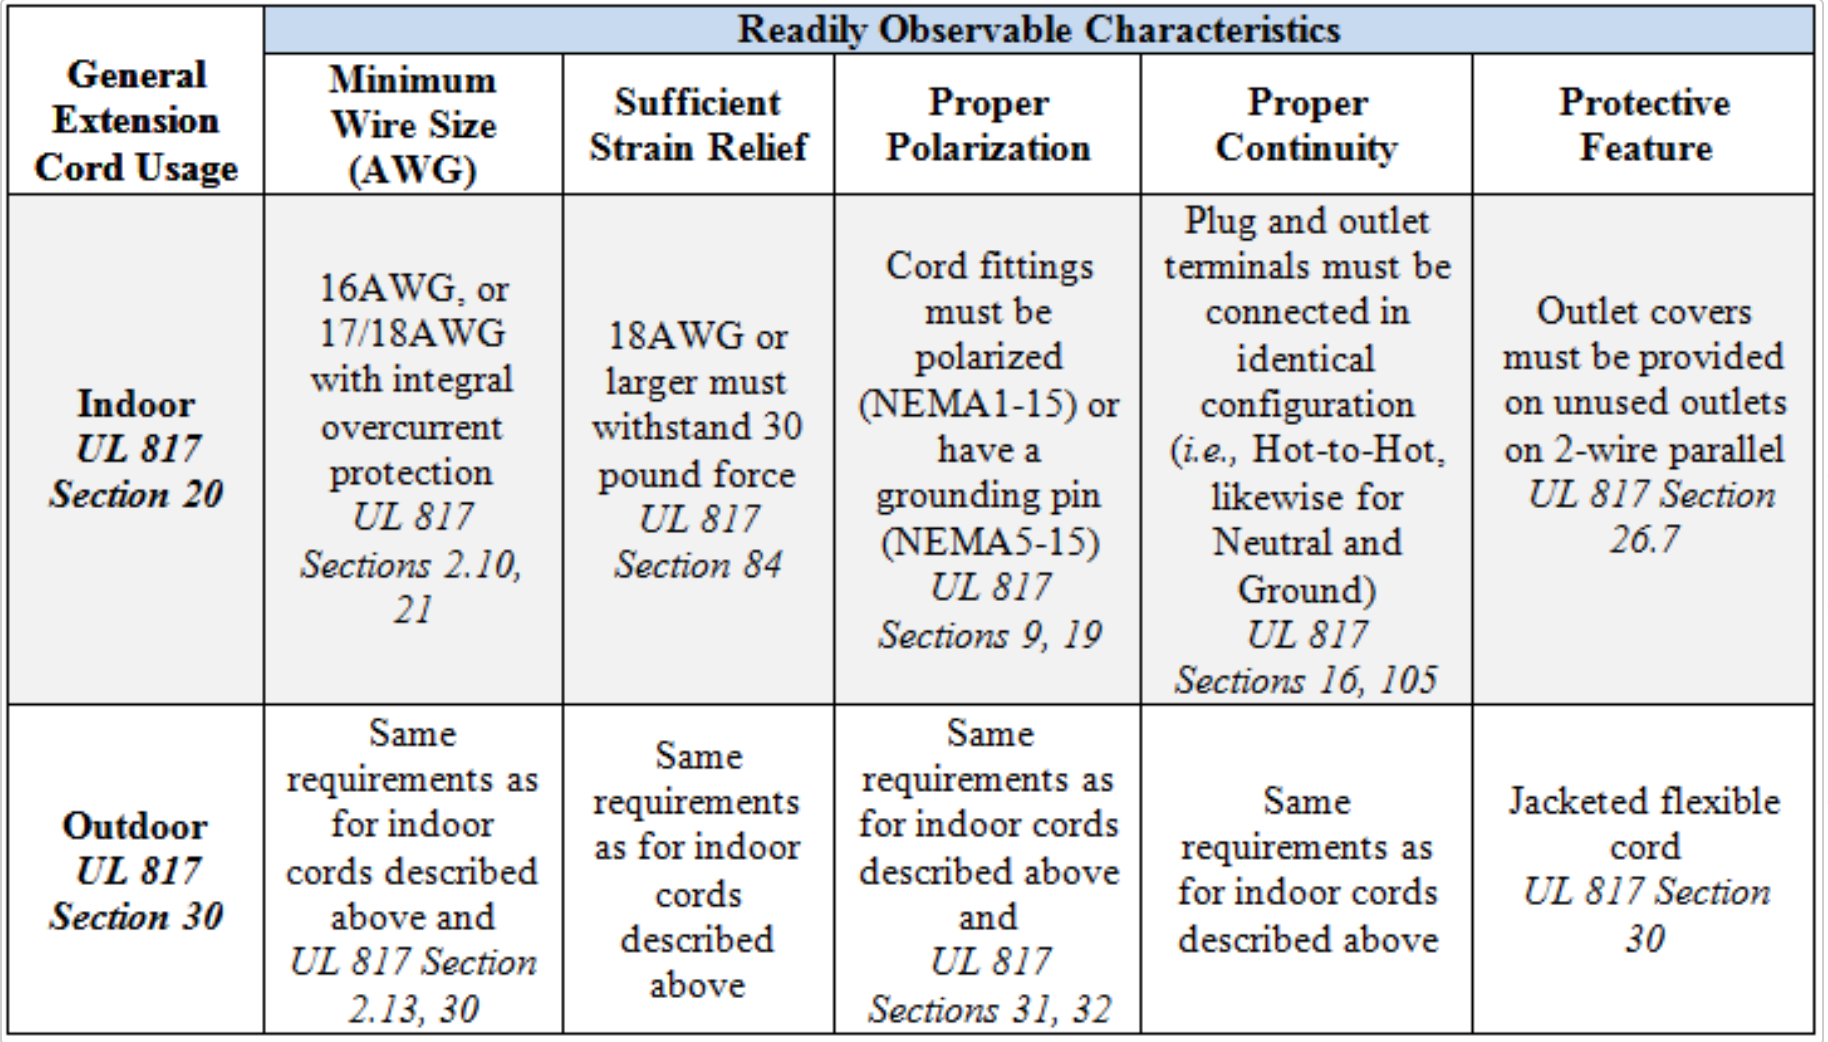 Readily Observable Characteristics for Extension Cords